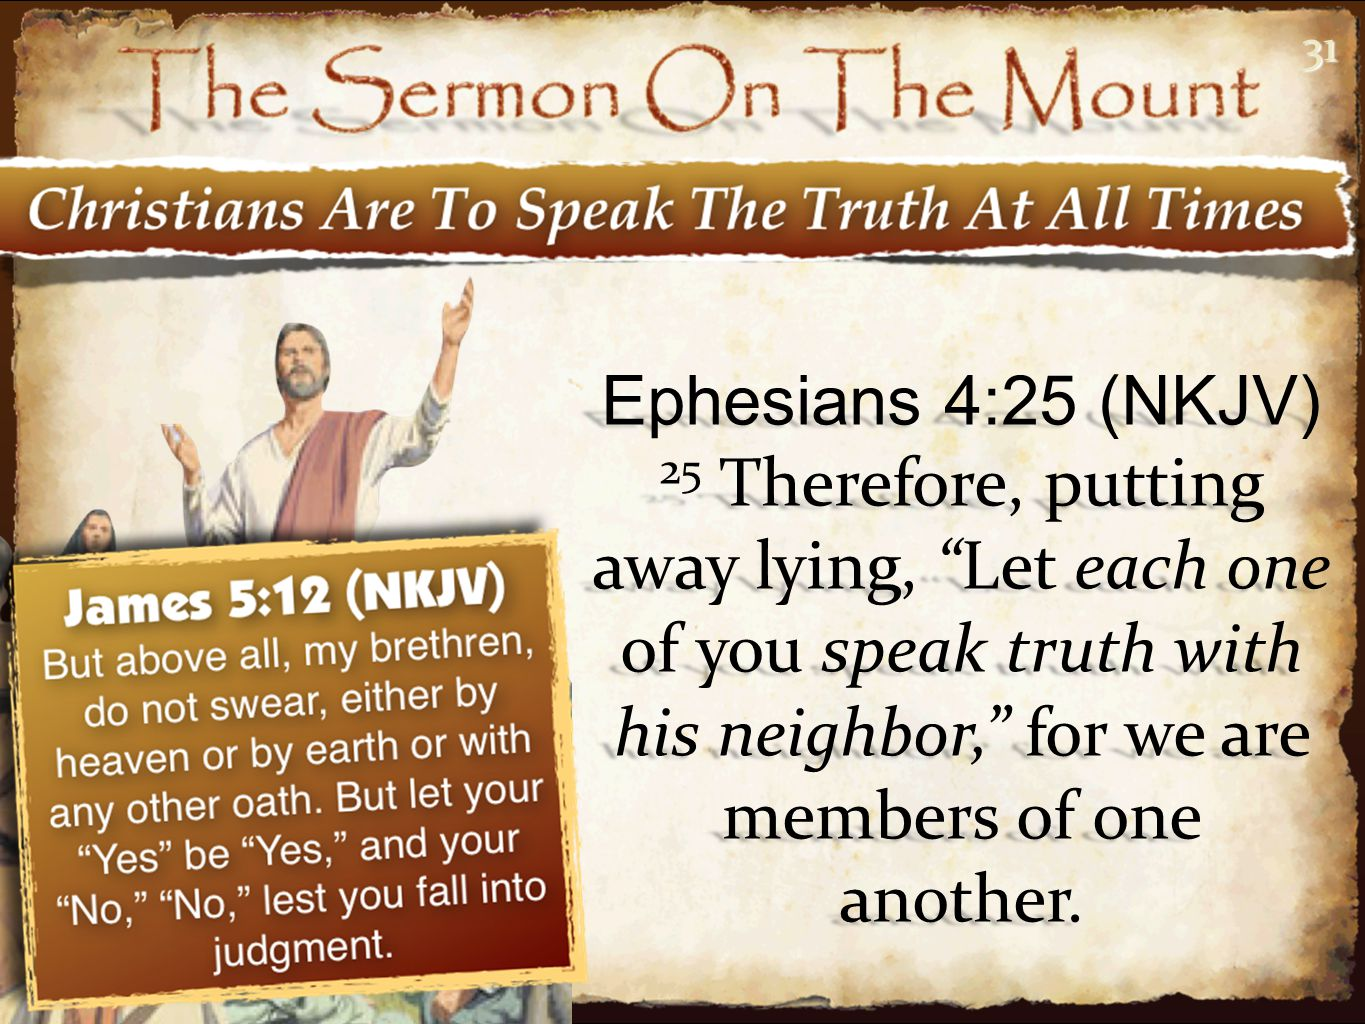 31 Ephesians 4:25 (NKJV) 25 Therefore, putting away lying, Let each one of you speak truth with his neighbor, for we are members of one another.